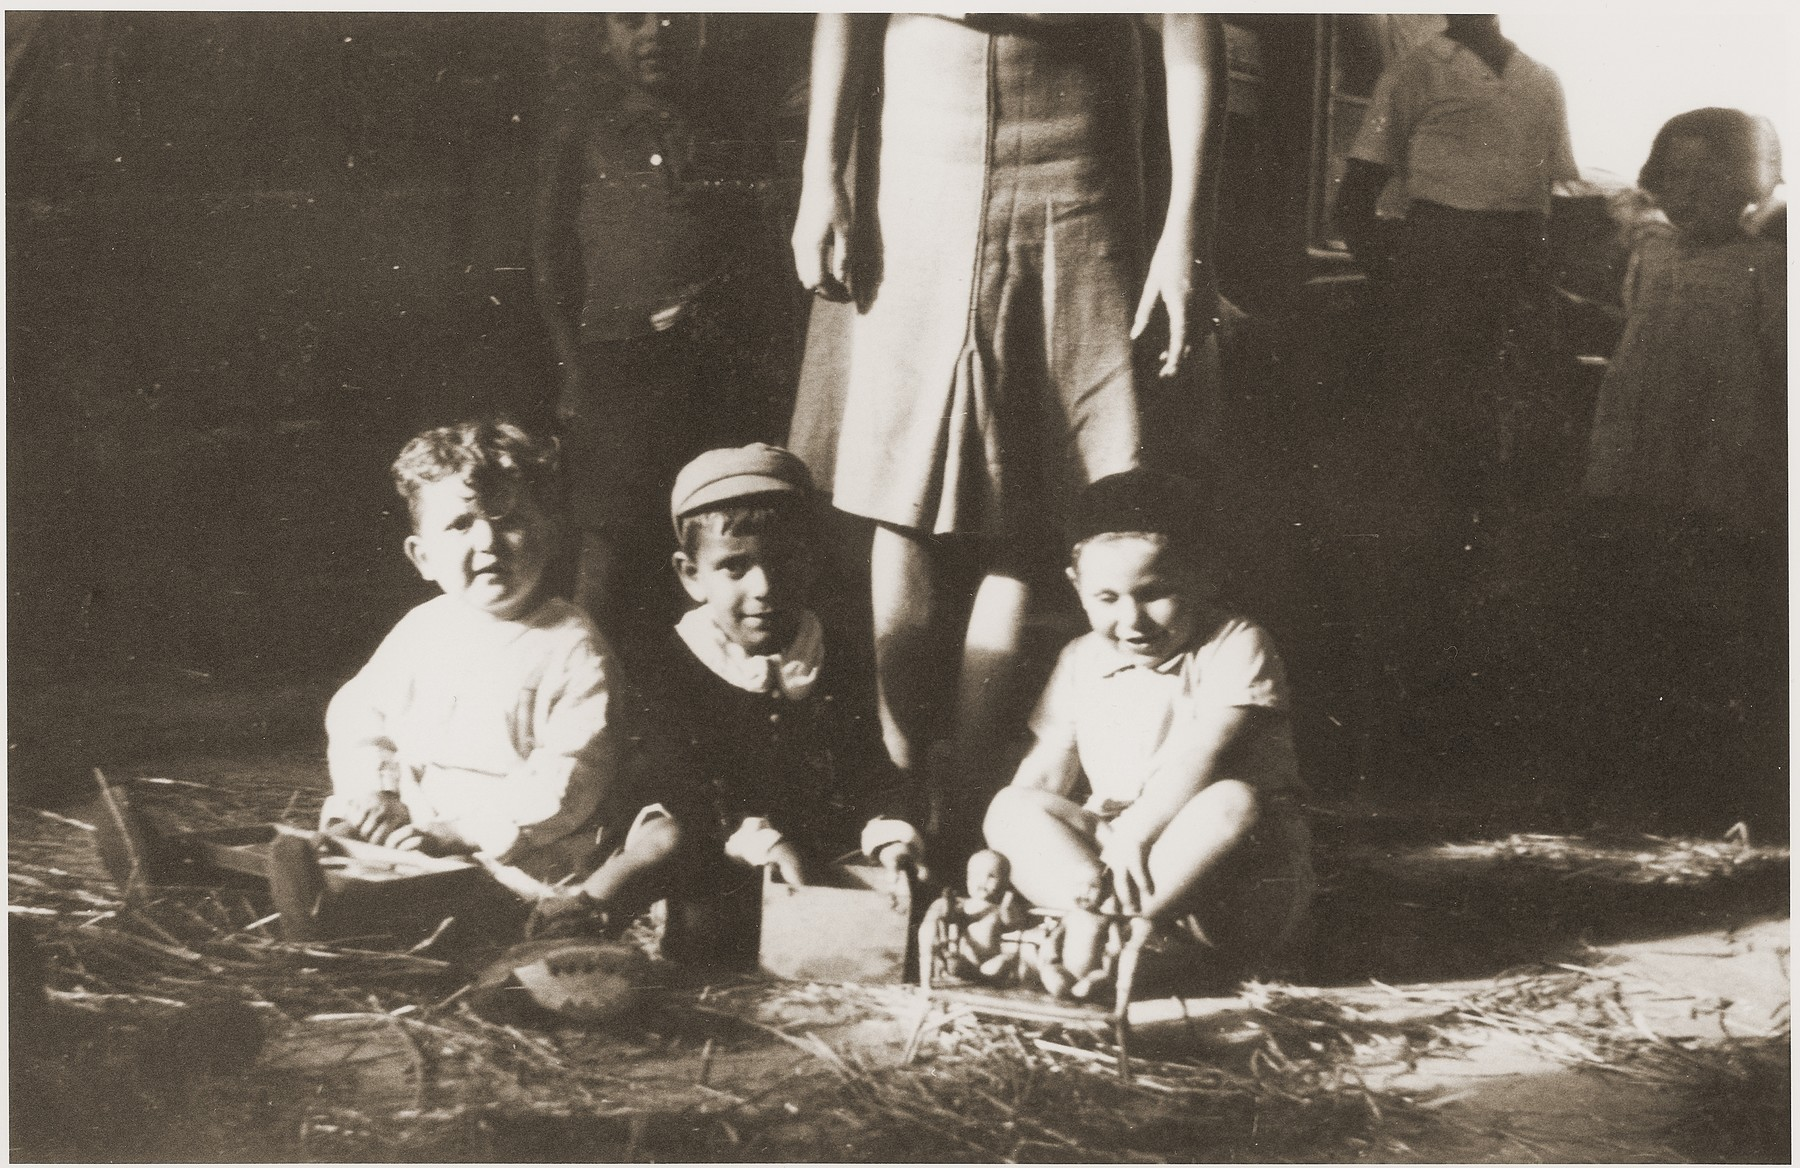 Three Jewish children in the Rivesaltes left orphaned after their parents were deported to Drancy sit on the straw strewn floor.